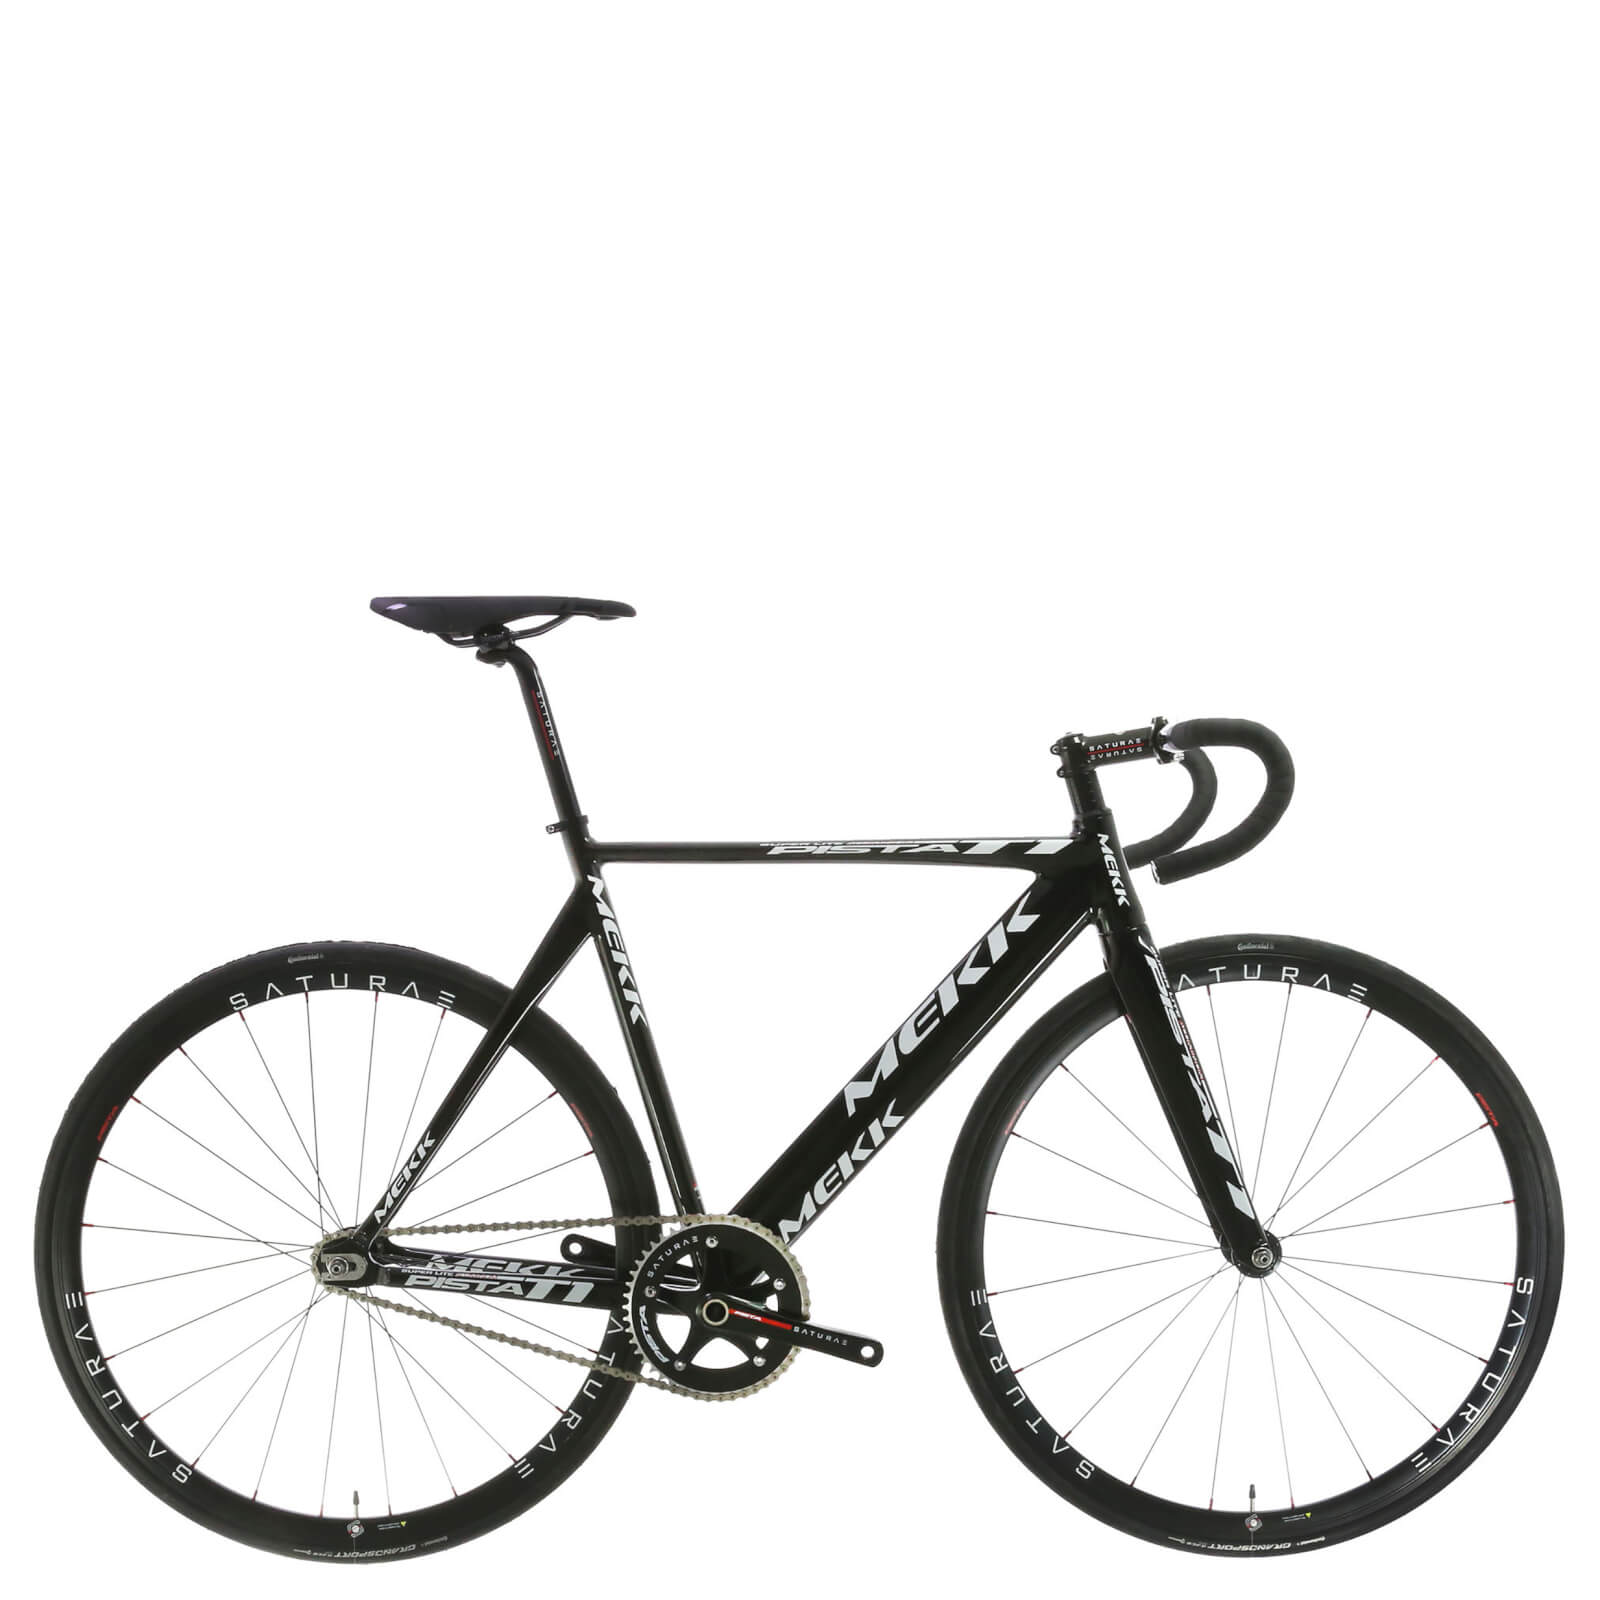 Mekk Pista T1 Track Bike 2016 - Black